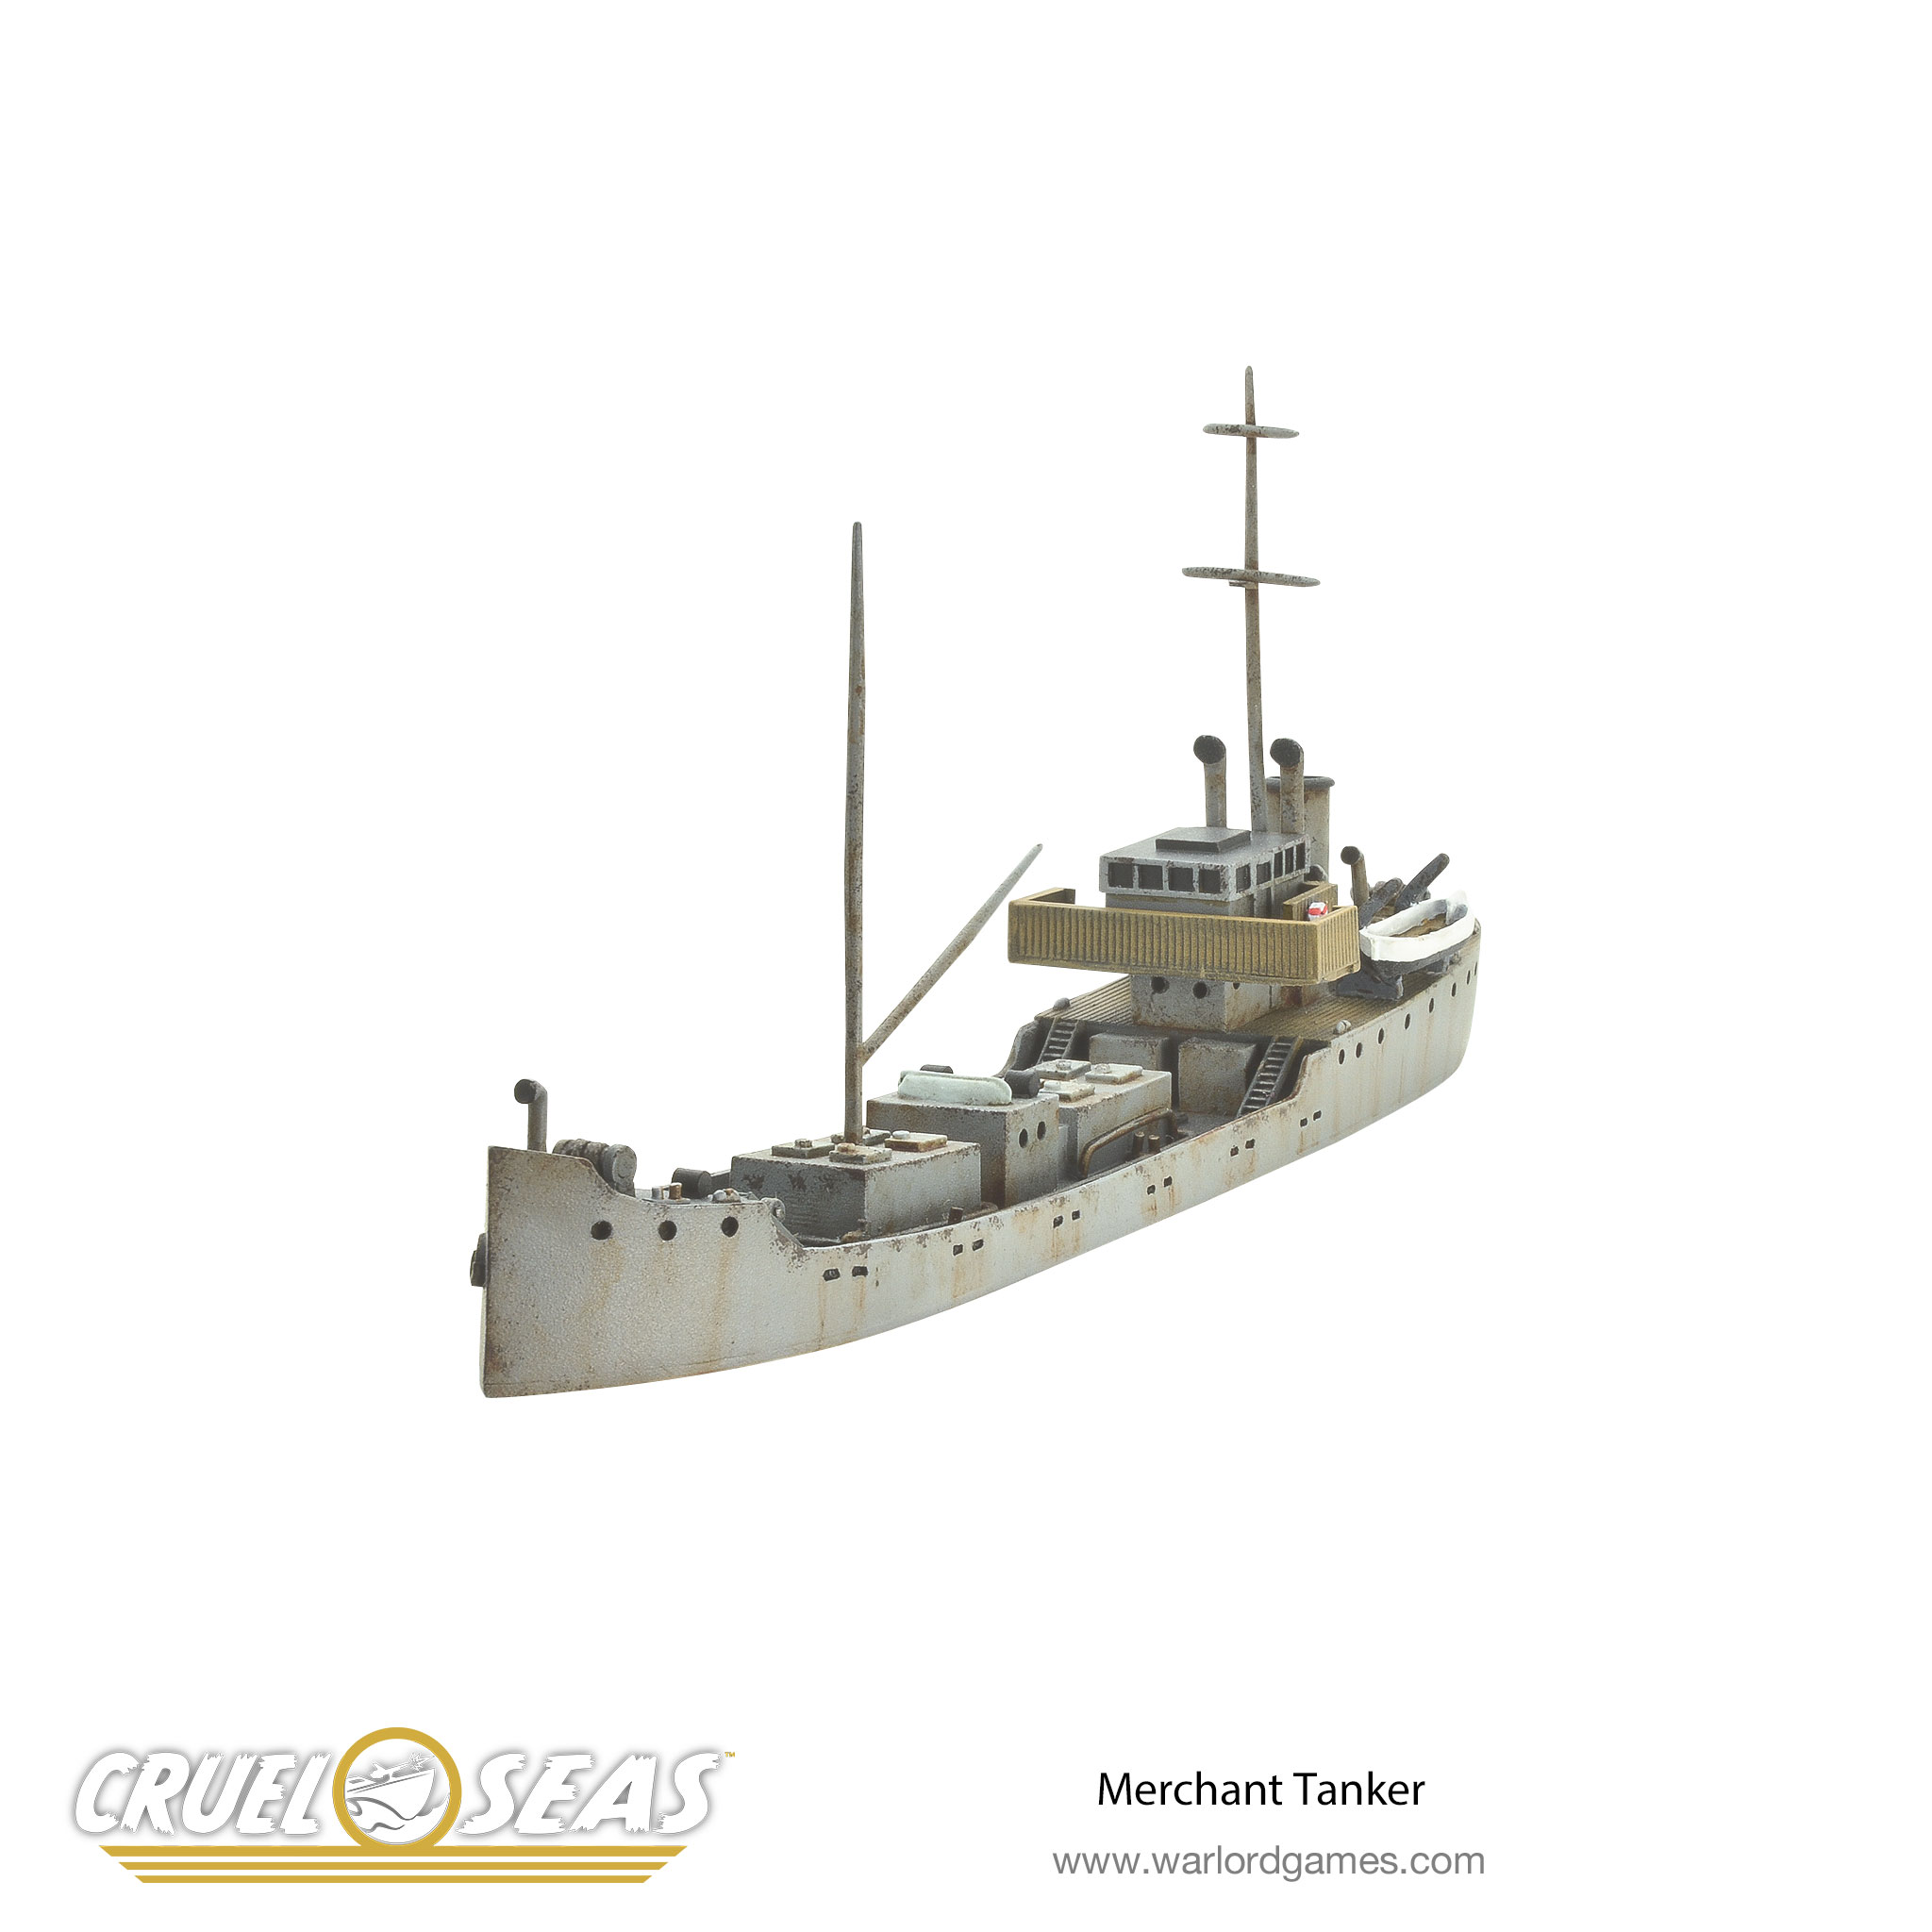 Merchant Tanker – Cruel Seas 1/300th scale | Warlord Games